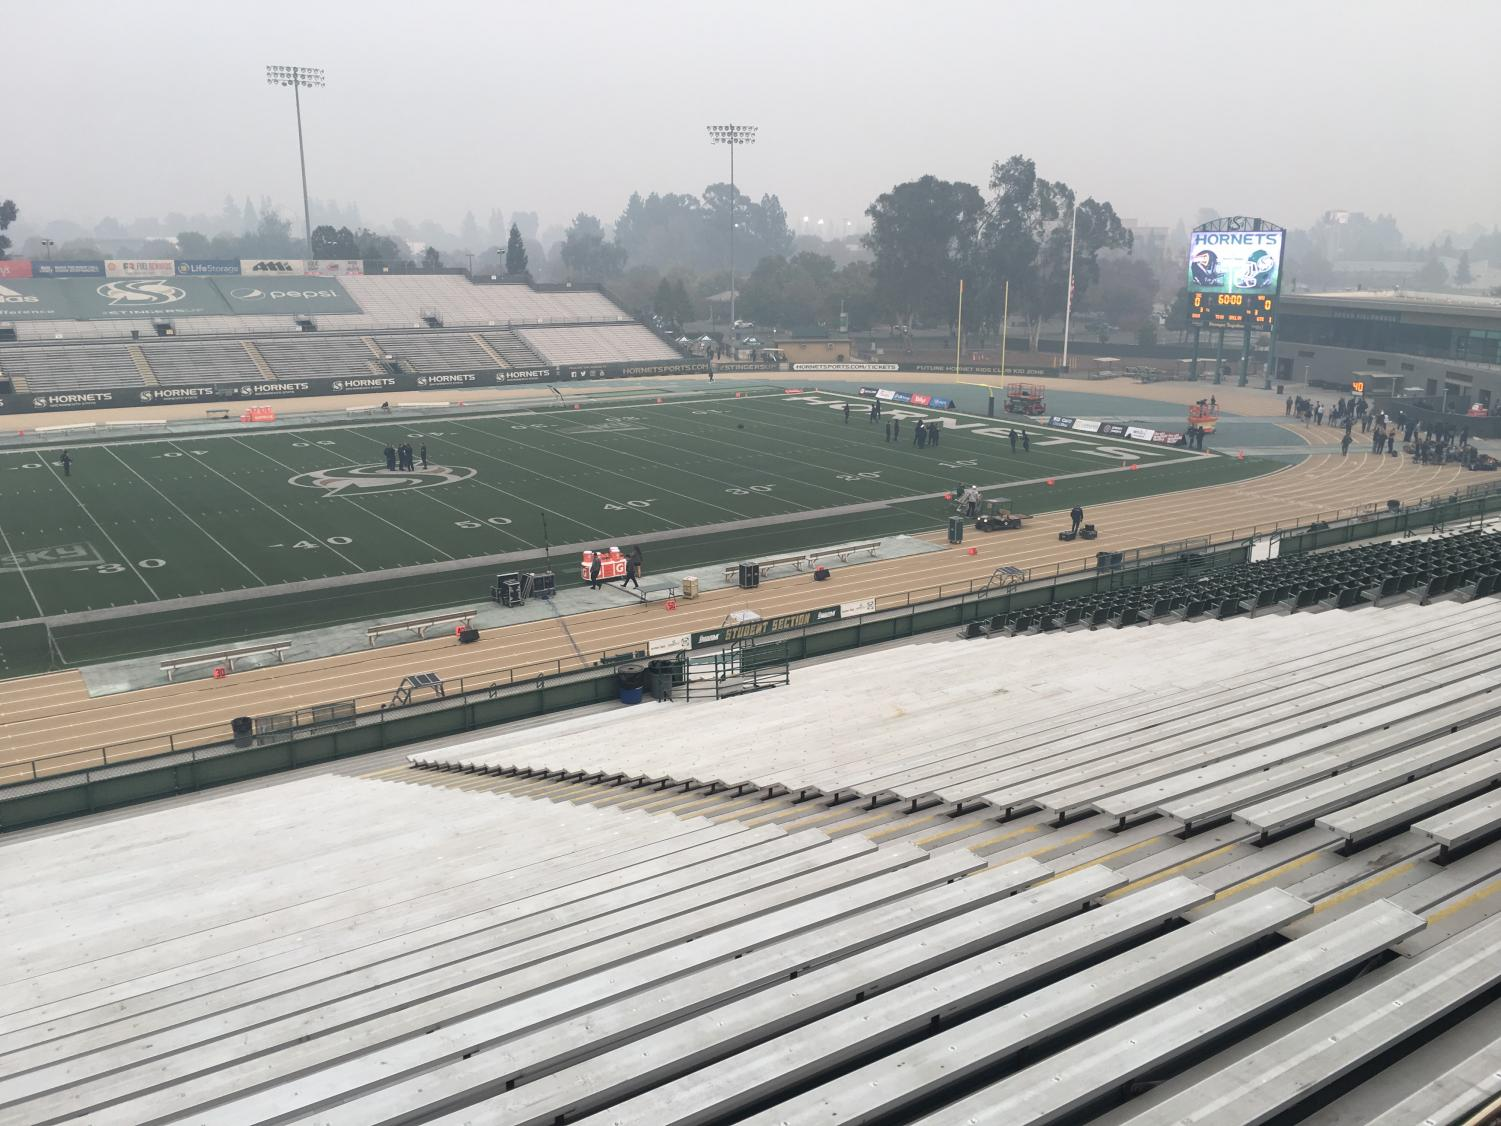 UC Davis announced that the 65th Causeway Classic against Sac State will be moved to University of Nevada, Reno on Saturday due to air quality concerns.